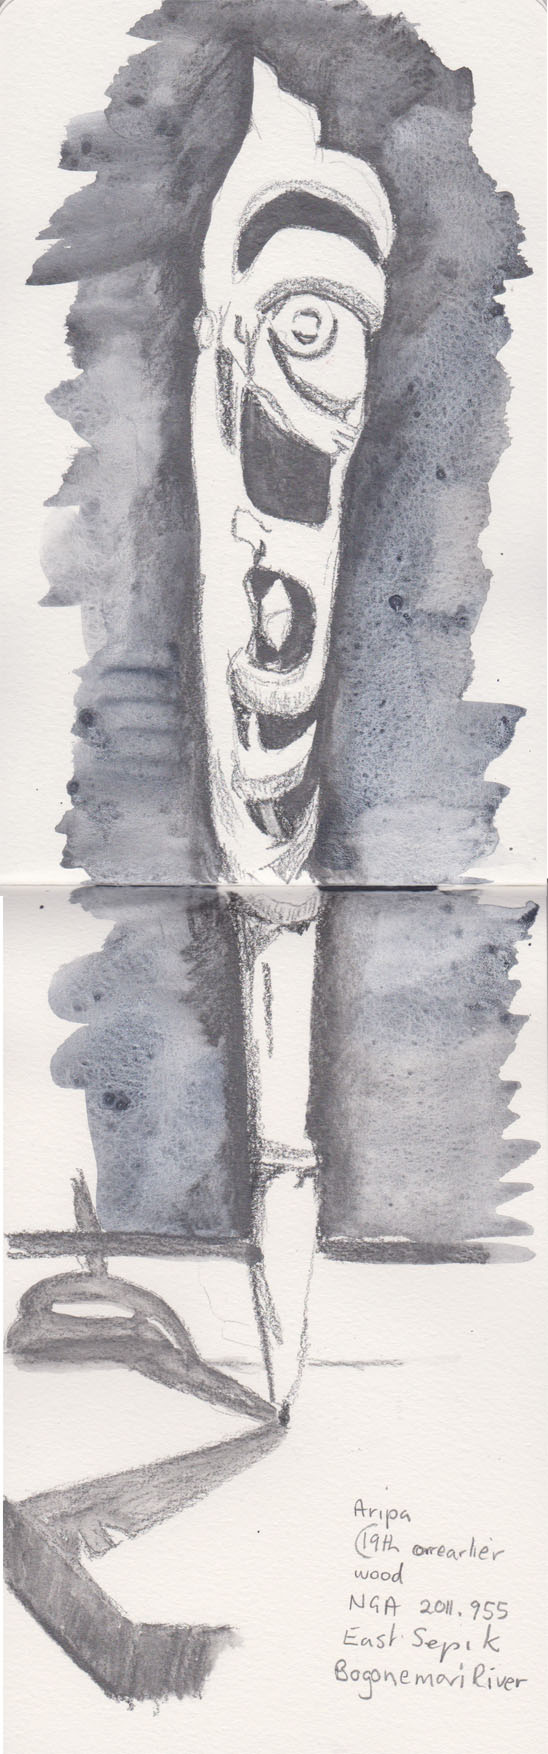 Aripa, 19th century or earlier, wood, Bogonemori River, east Sepik, collection of the National Gallery of Australia, Water soluble graphite and watercolour (added later), 17 August 2015